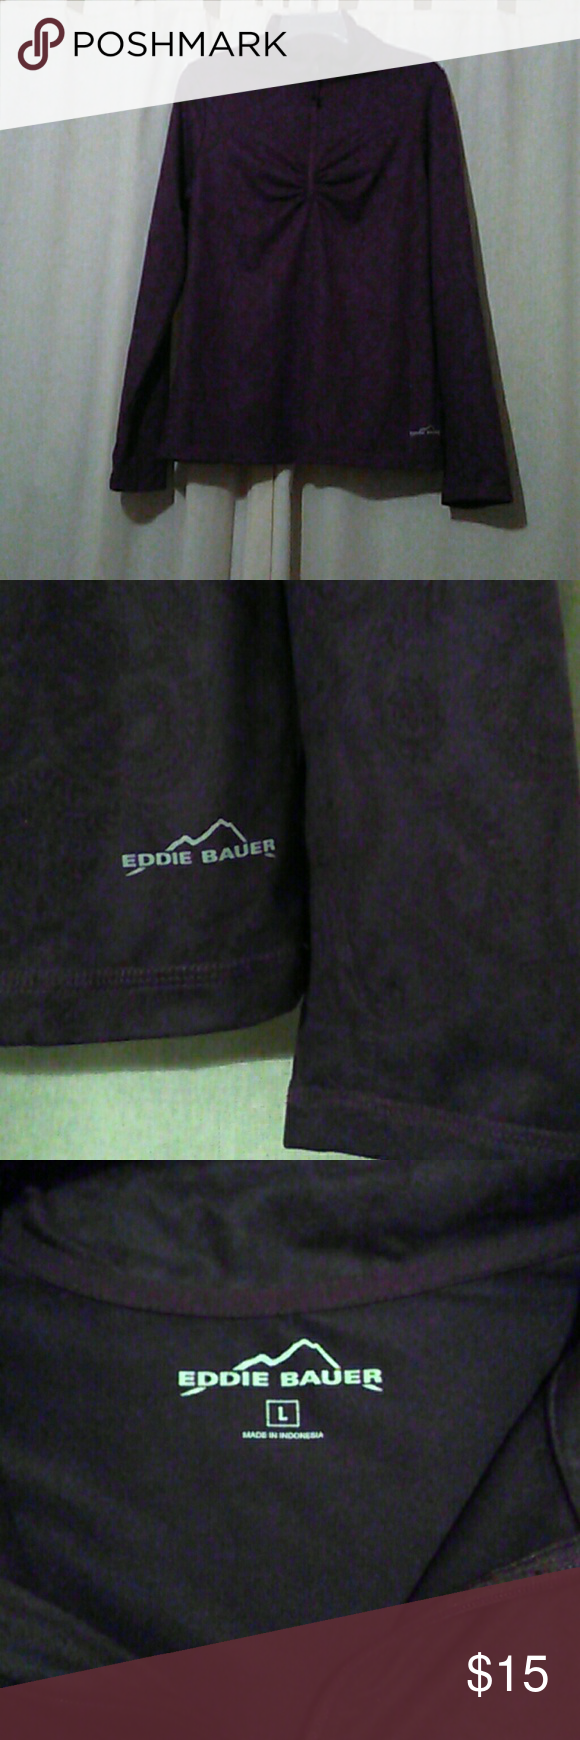 NWOT/Eddie Bauer Top or Jacket Size L/ deep purple heavy top or light Jacket. 90% polyester 10% spandex. Last picture is taken with flash so you can see the design. True color is dark purple. Very soft to the touch. Eddie Bauer Jackets & Coats